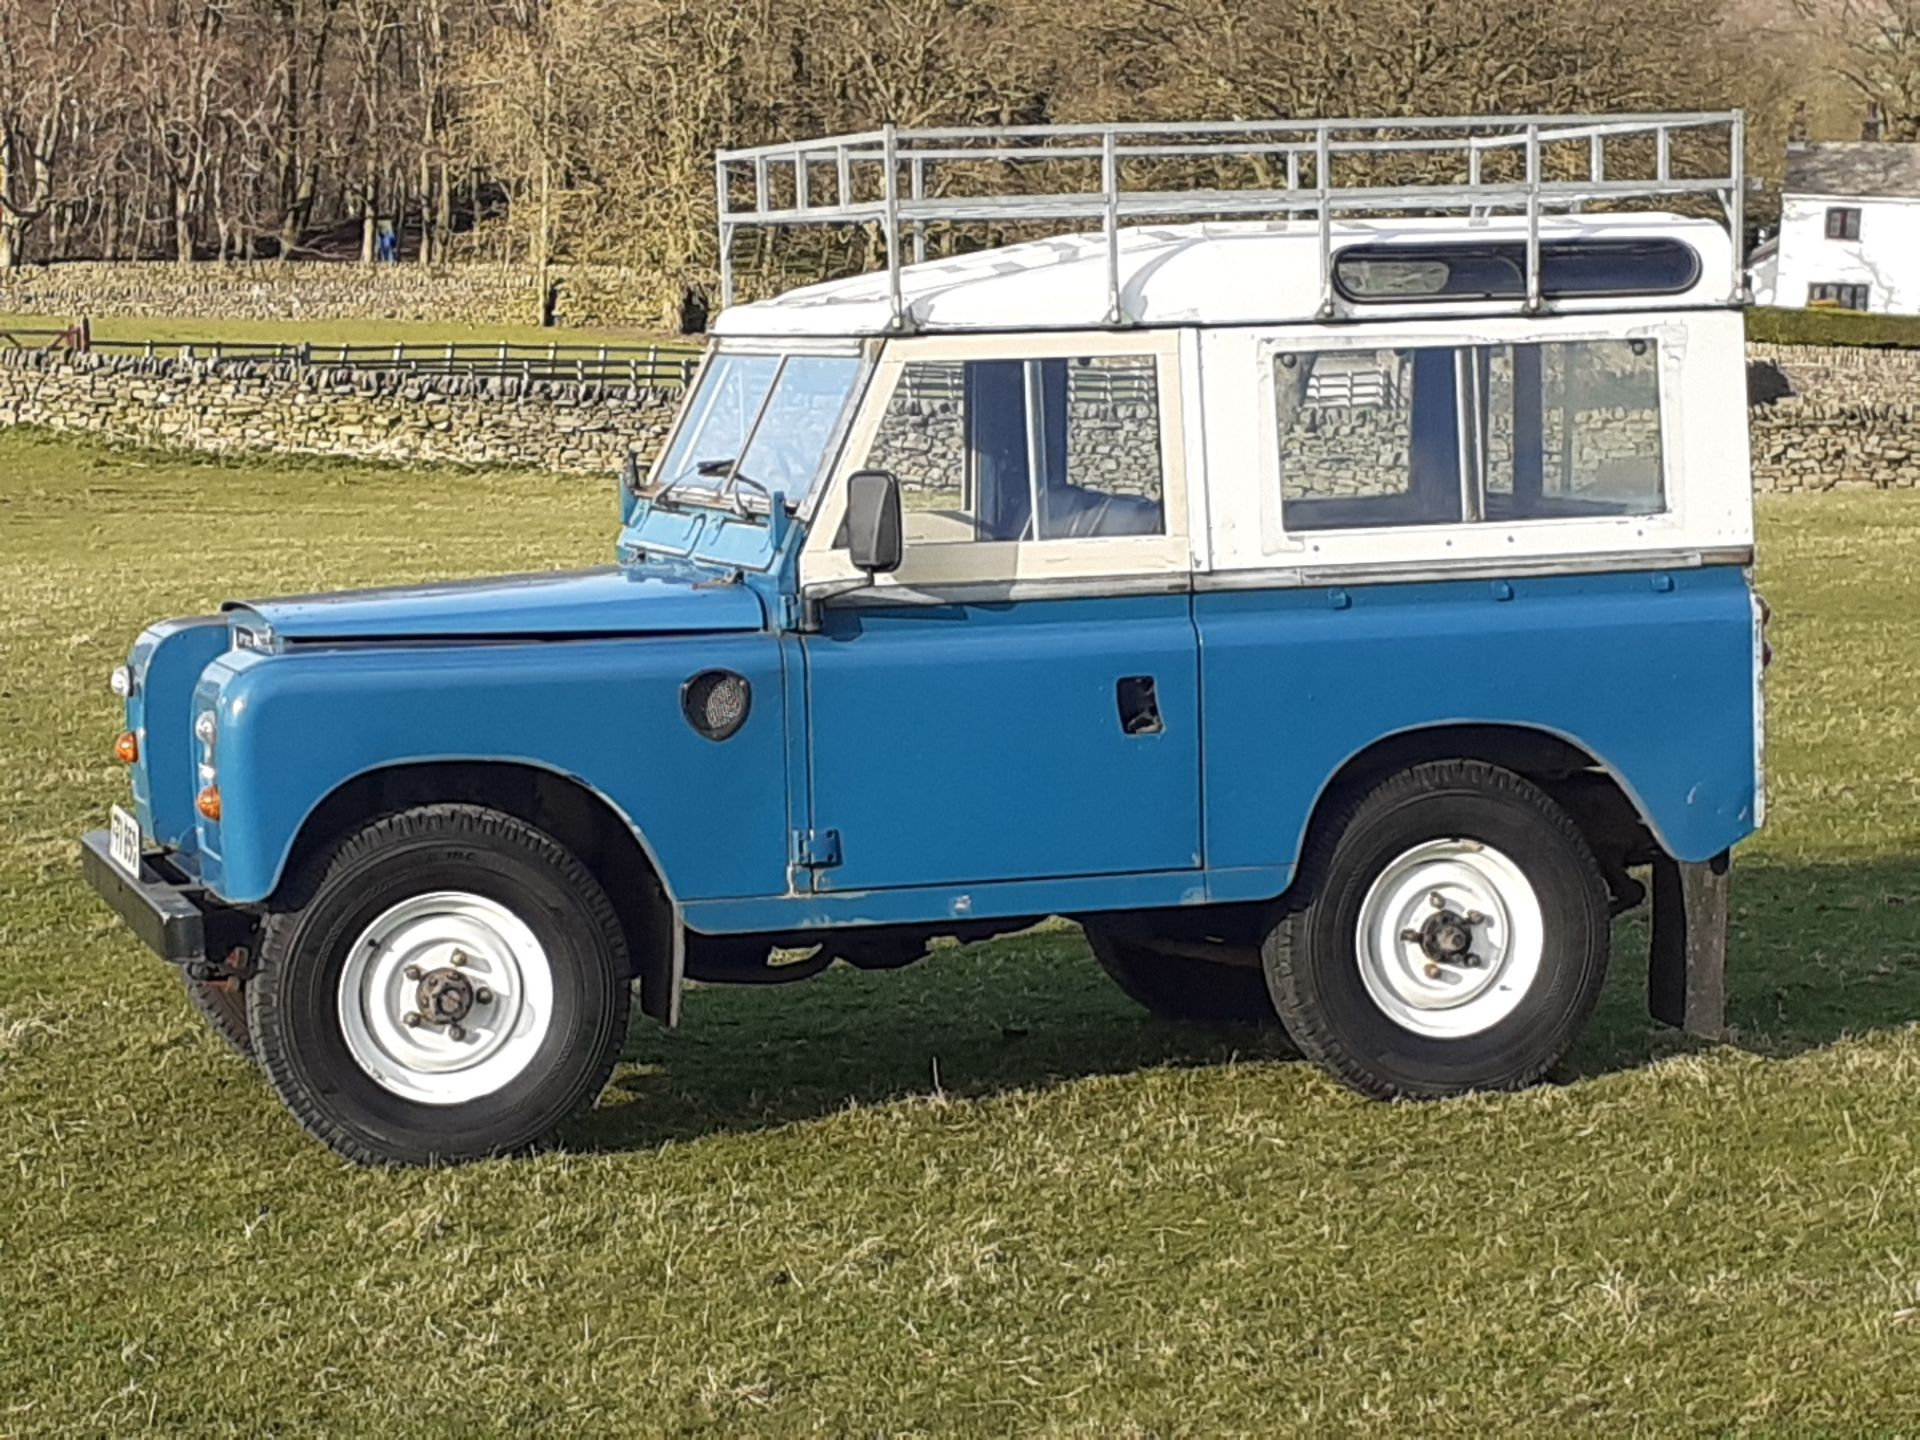 1980 LAND ROVER SERIES III CLASSIC STATION WAGON, TAX AND MOT EXEMPT *NO VAT* - Image 4 of 22